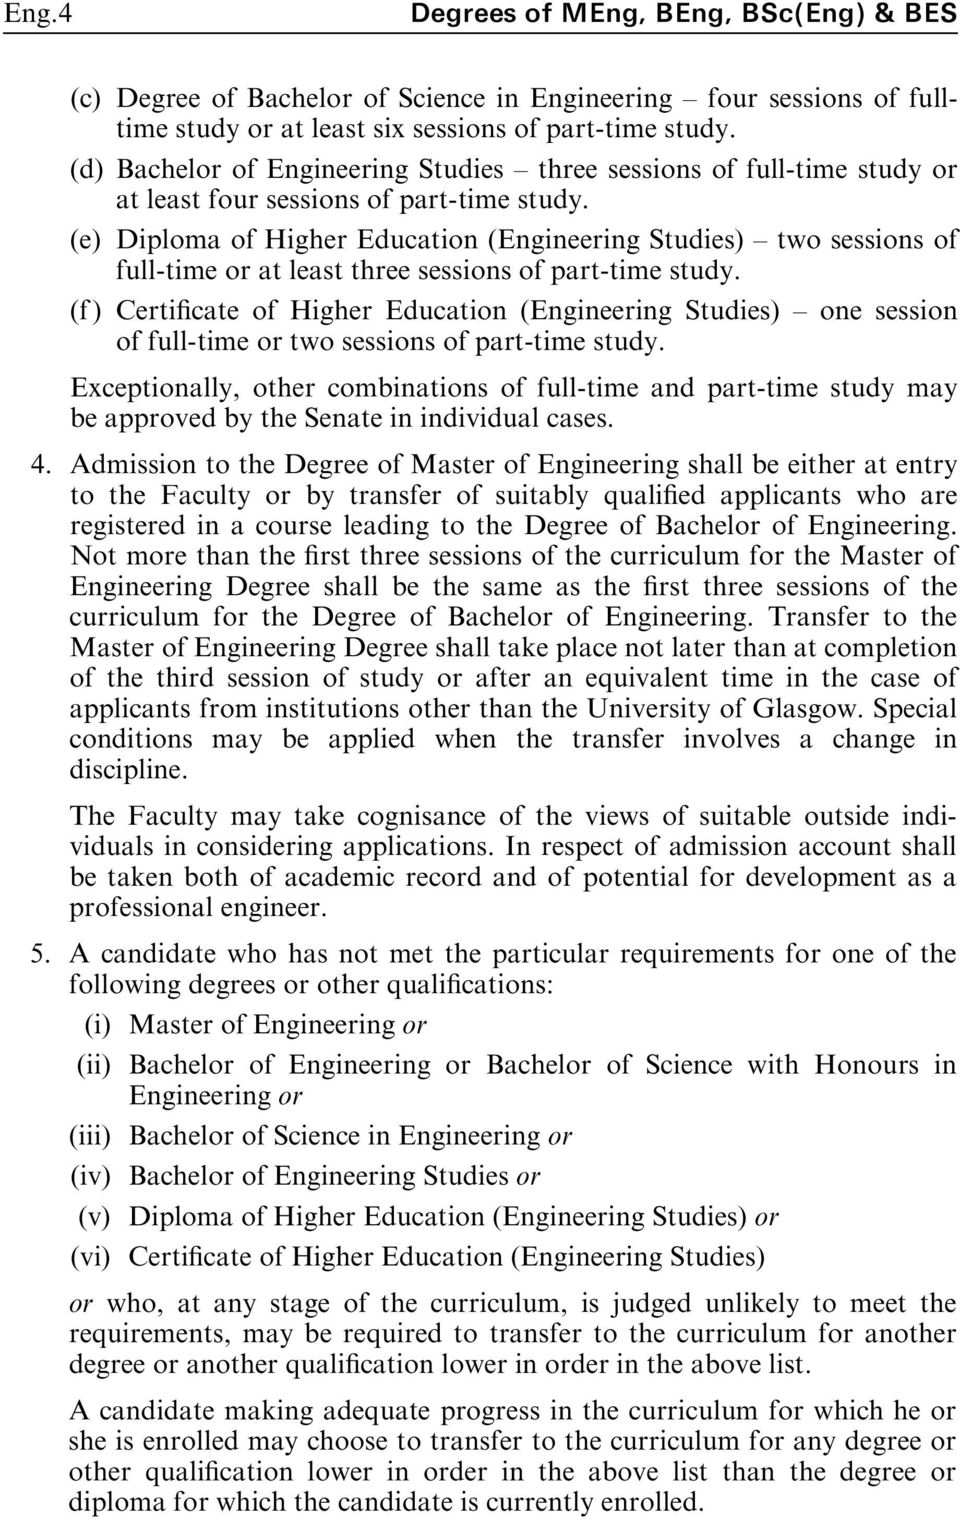 (e) Diploma of Higher Education (Engineering Studies) ^ two sessions of full-time or at least three sessions of part-time study.